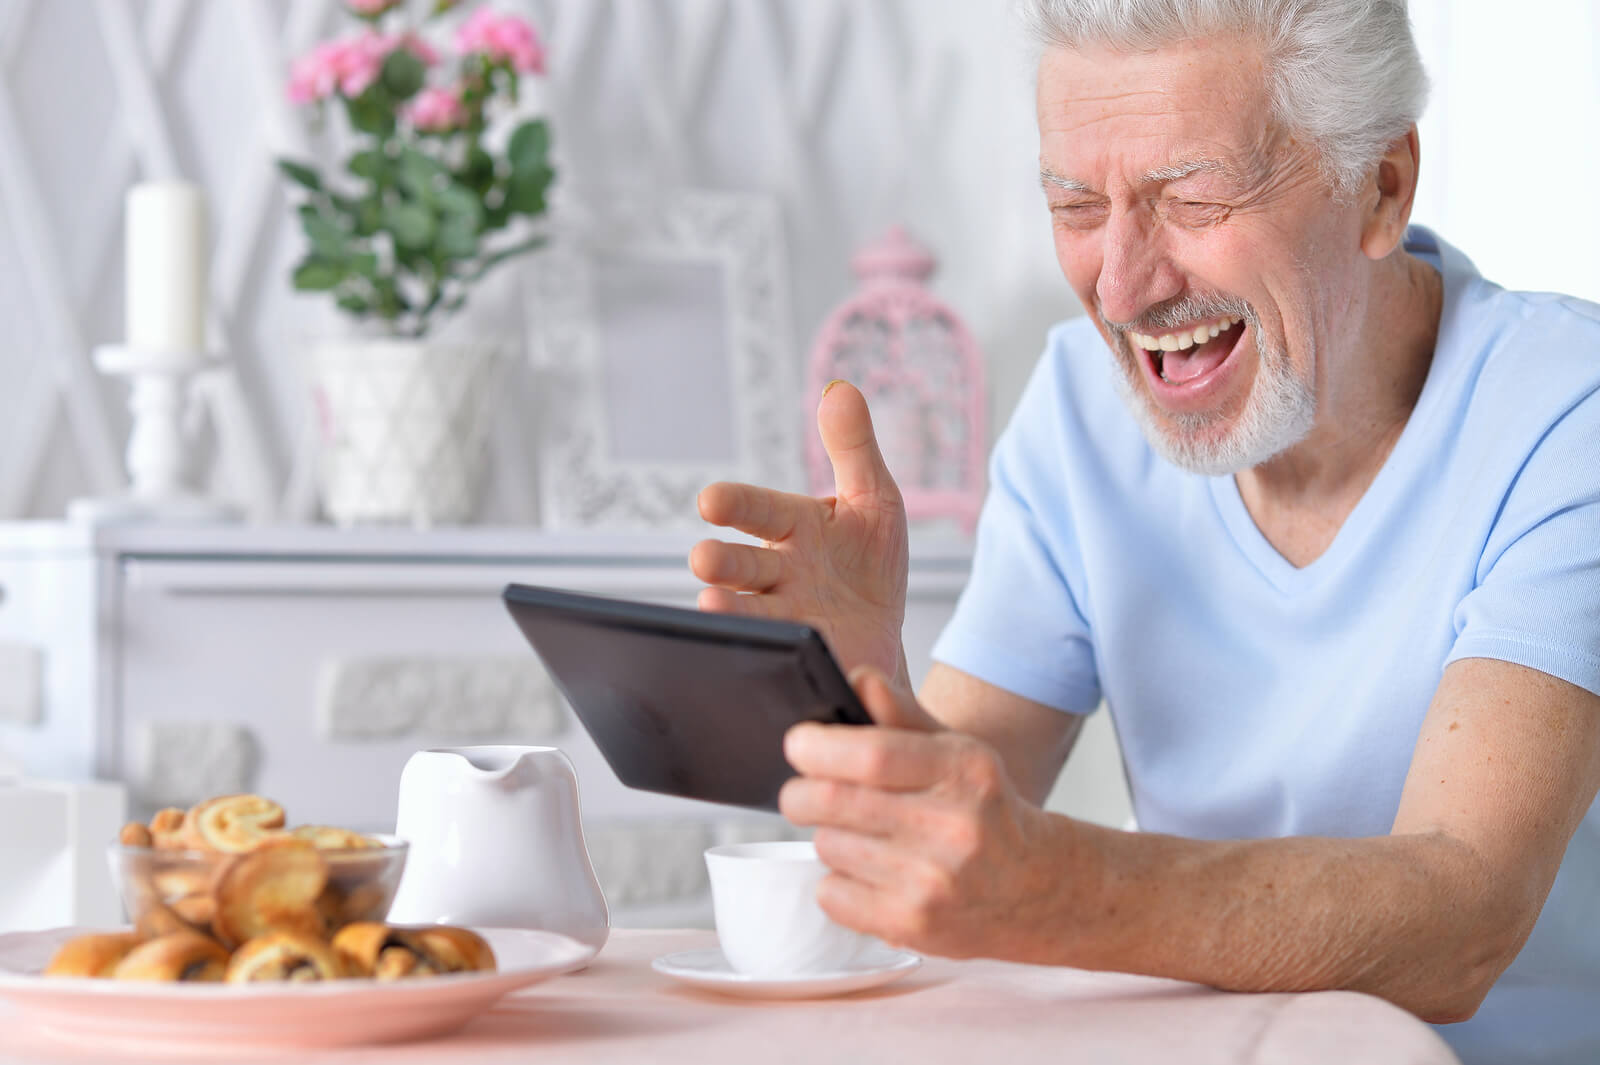 Older man happily using a tablet.